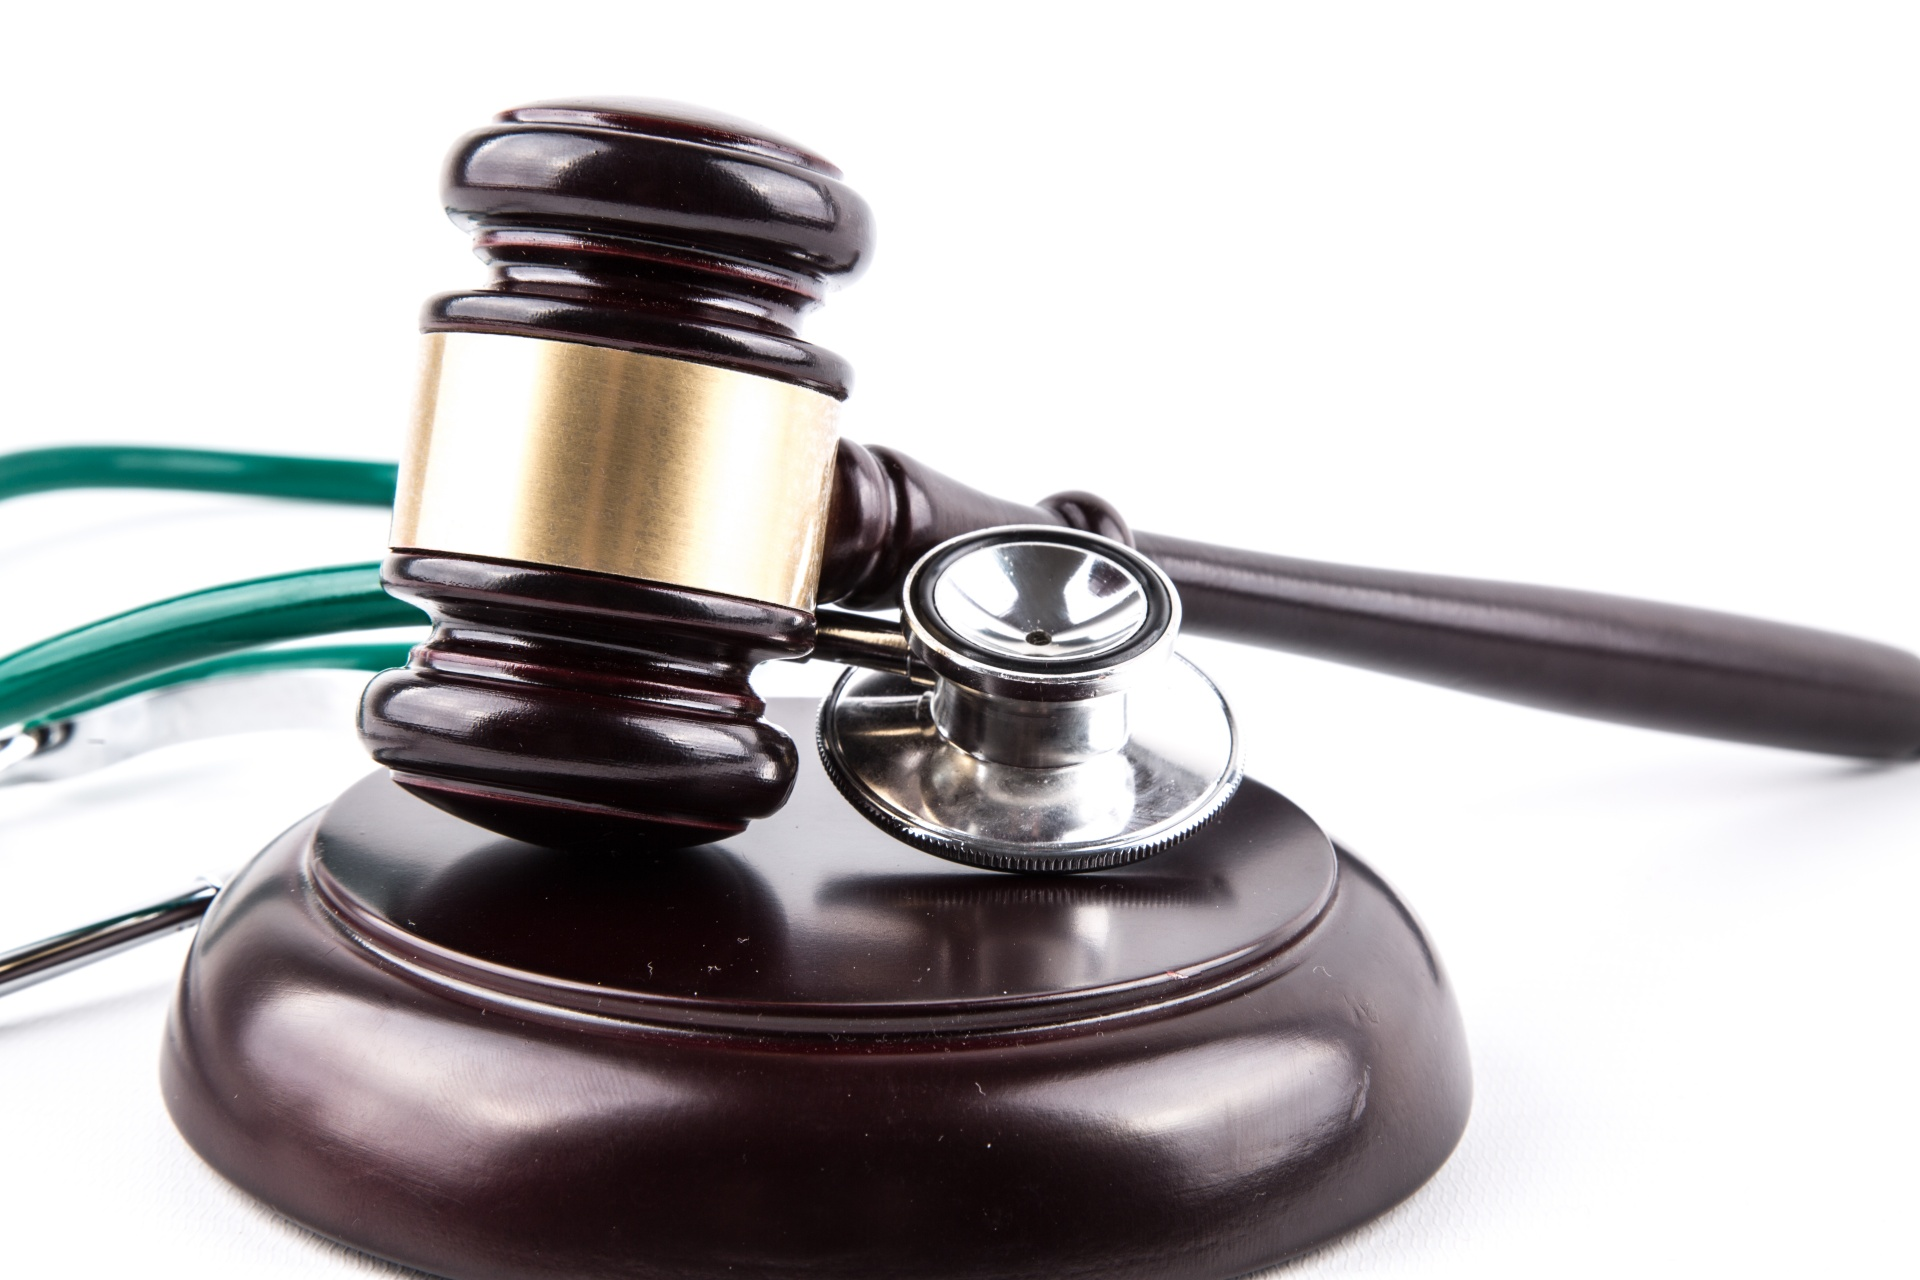 Dr  Wes: Boarded to Death: Physicians Sue the ABIM